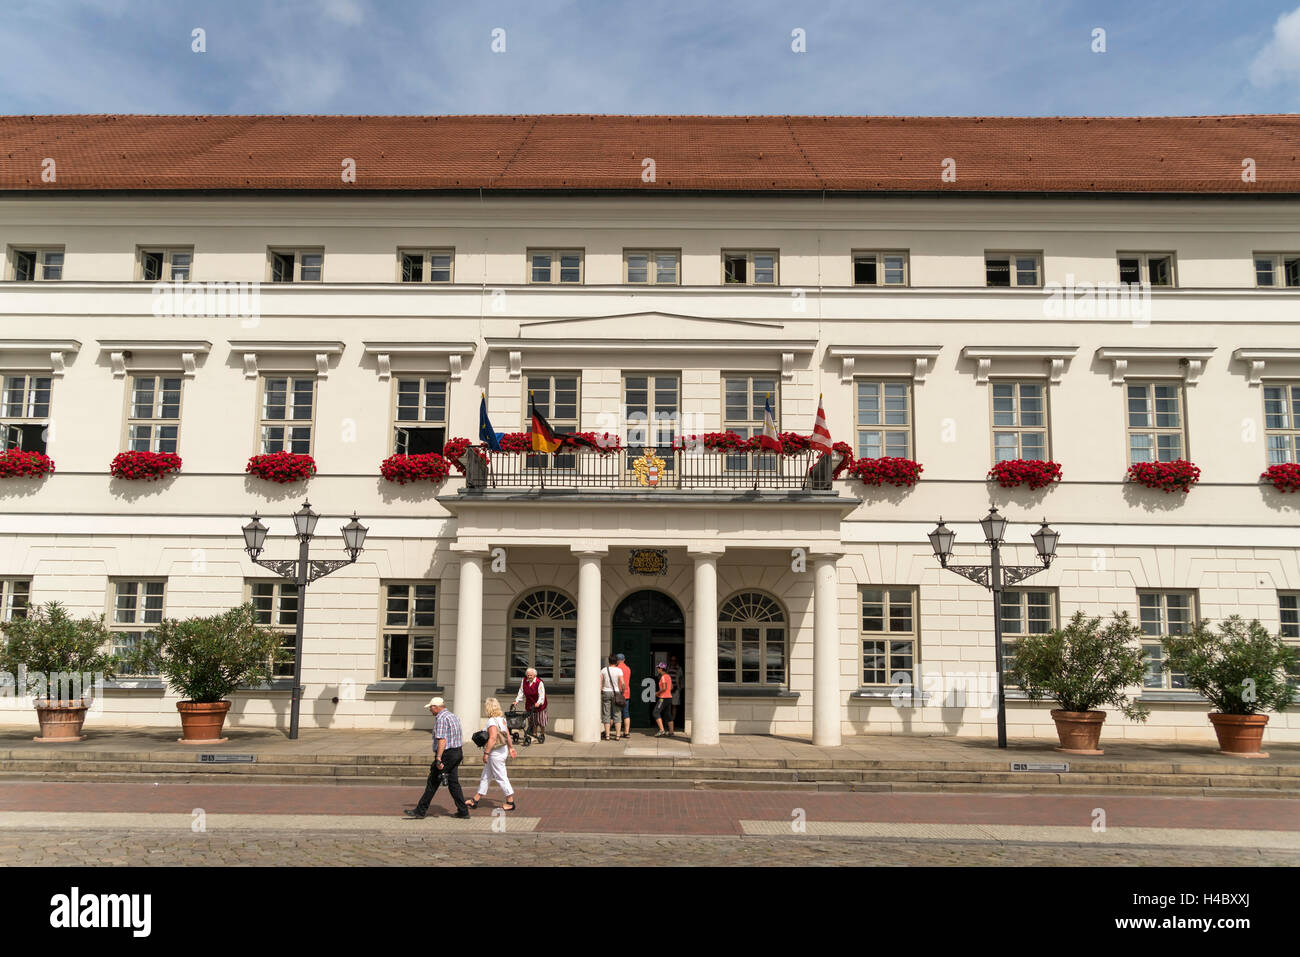 city hall,  historic old town, Hanseatic City of Wismar, Mecklenburg-Vorpommern, Germany - Stock Image